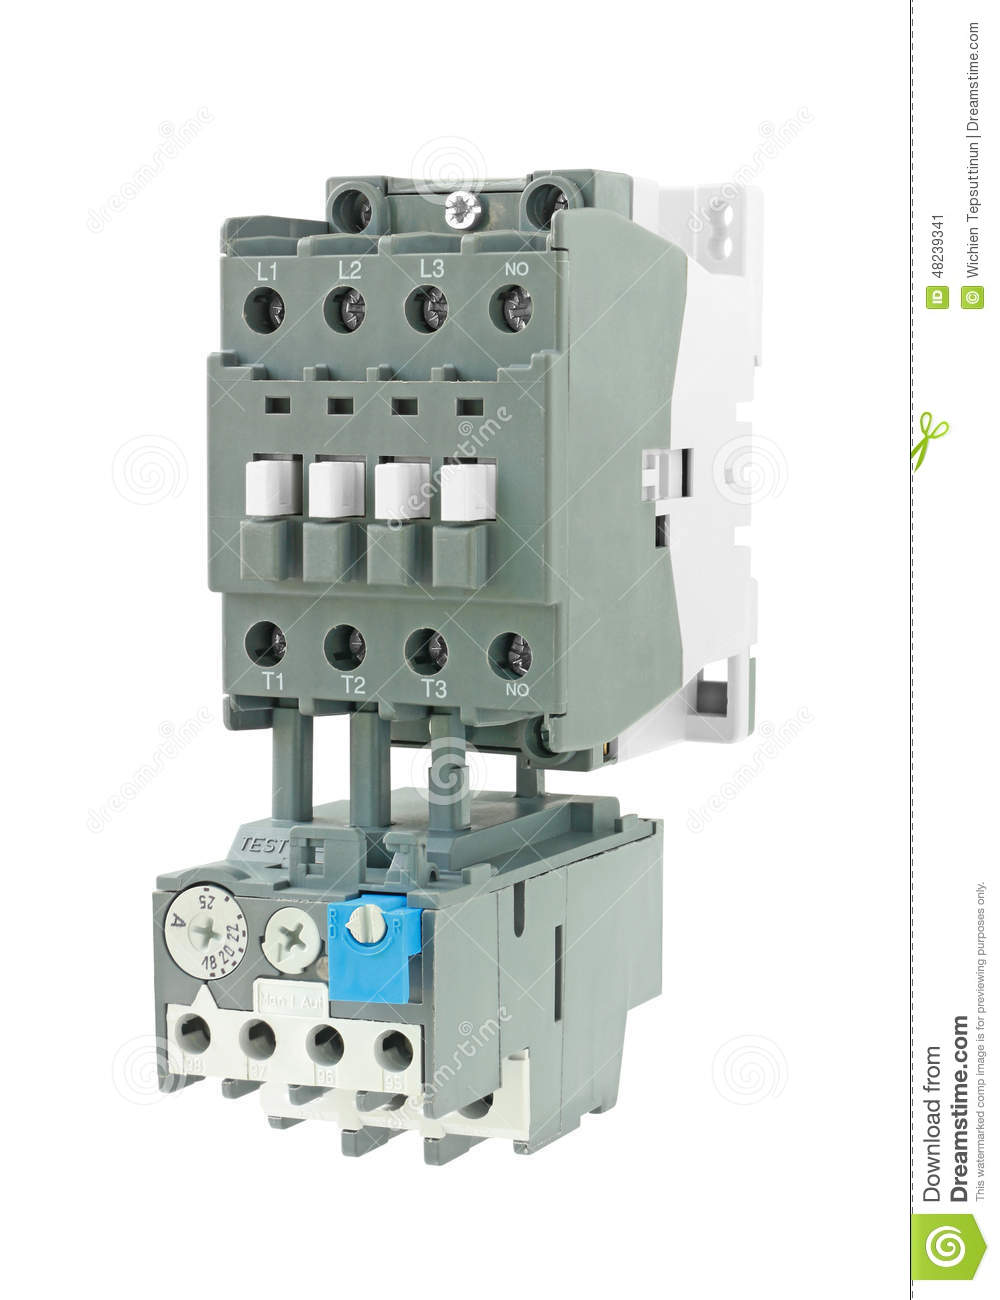 electrical and magnetic contactor isolated on white bac stock photo image 48239341